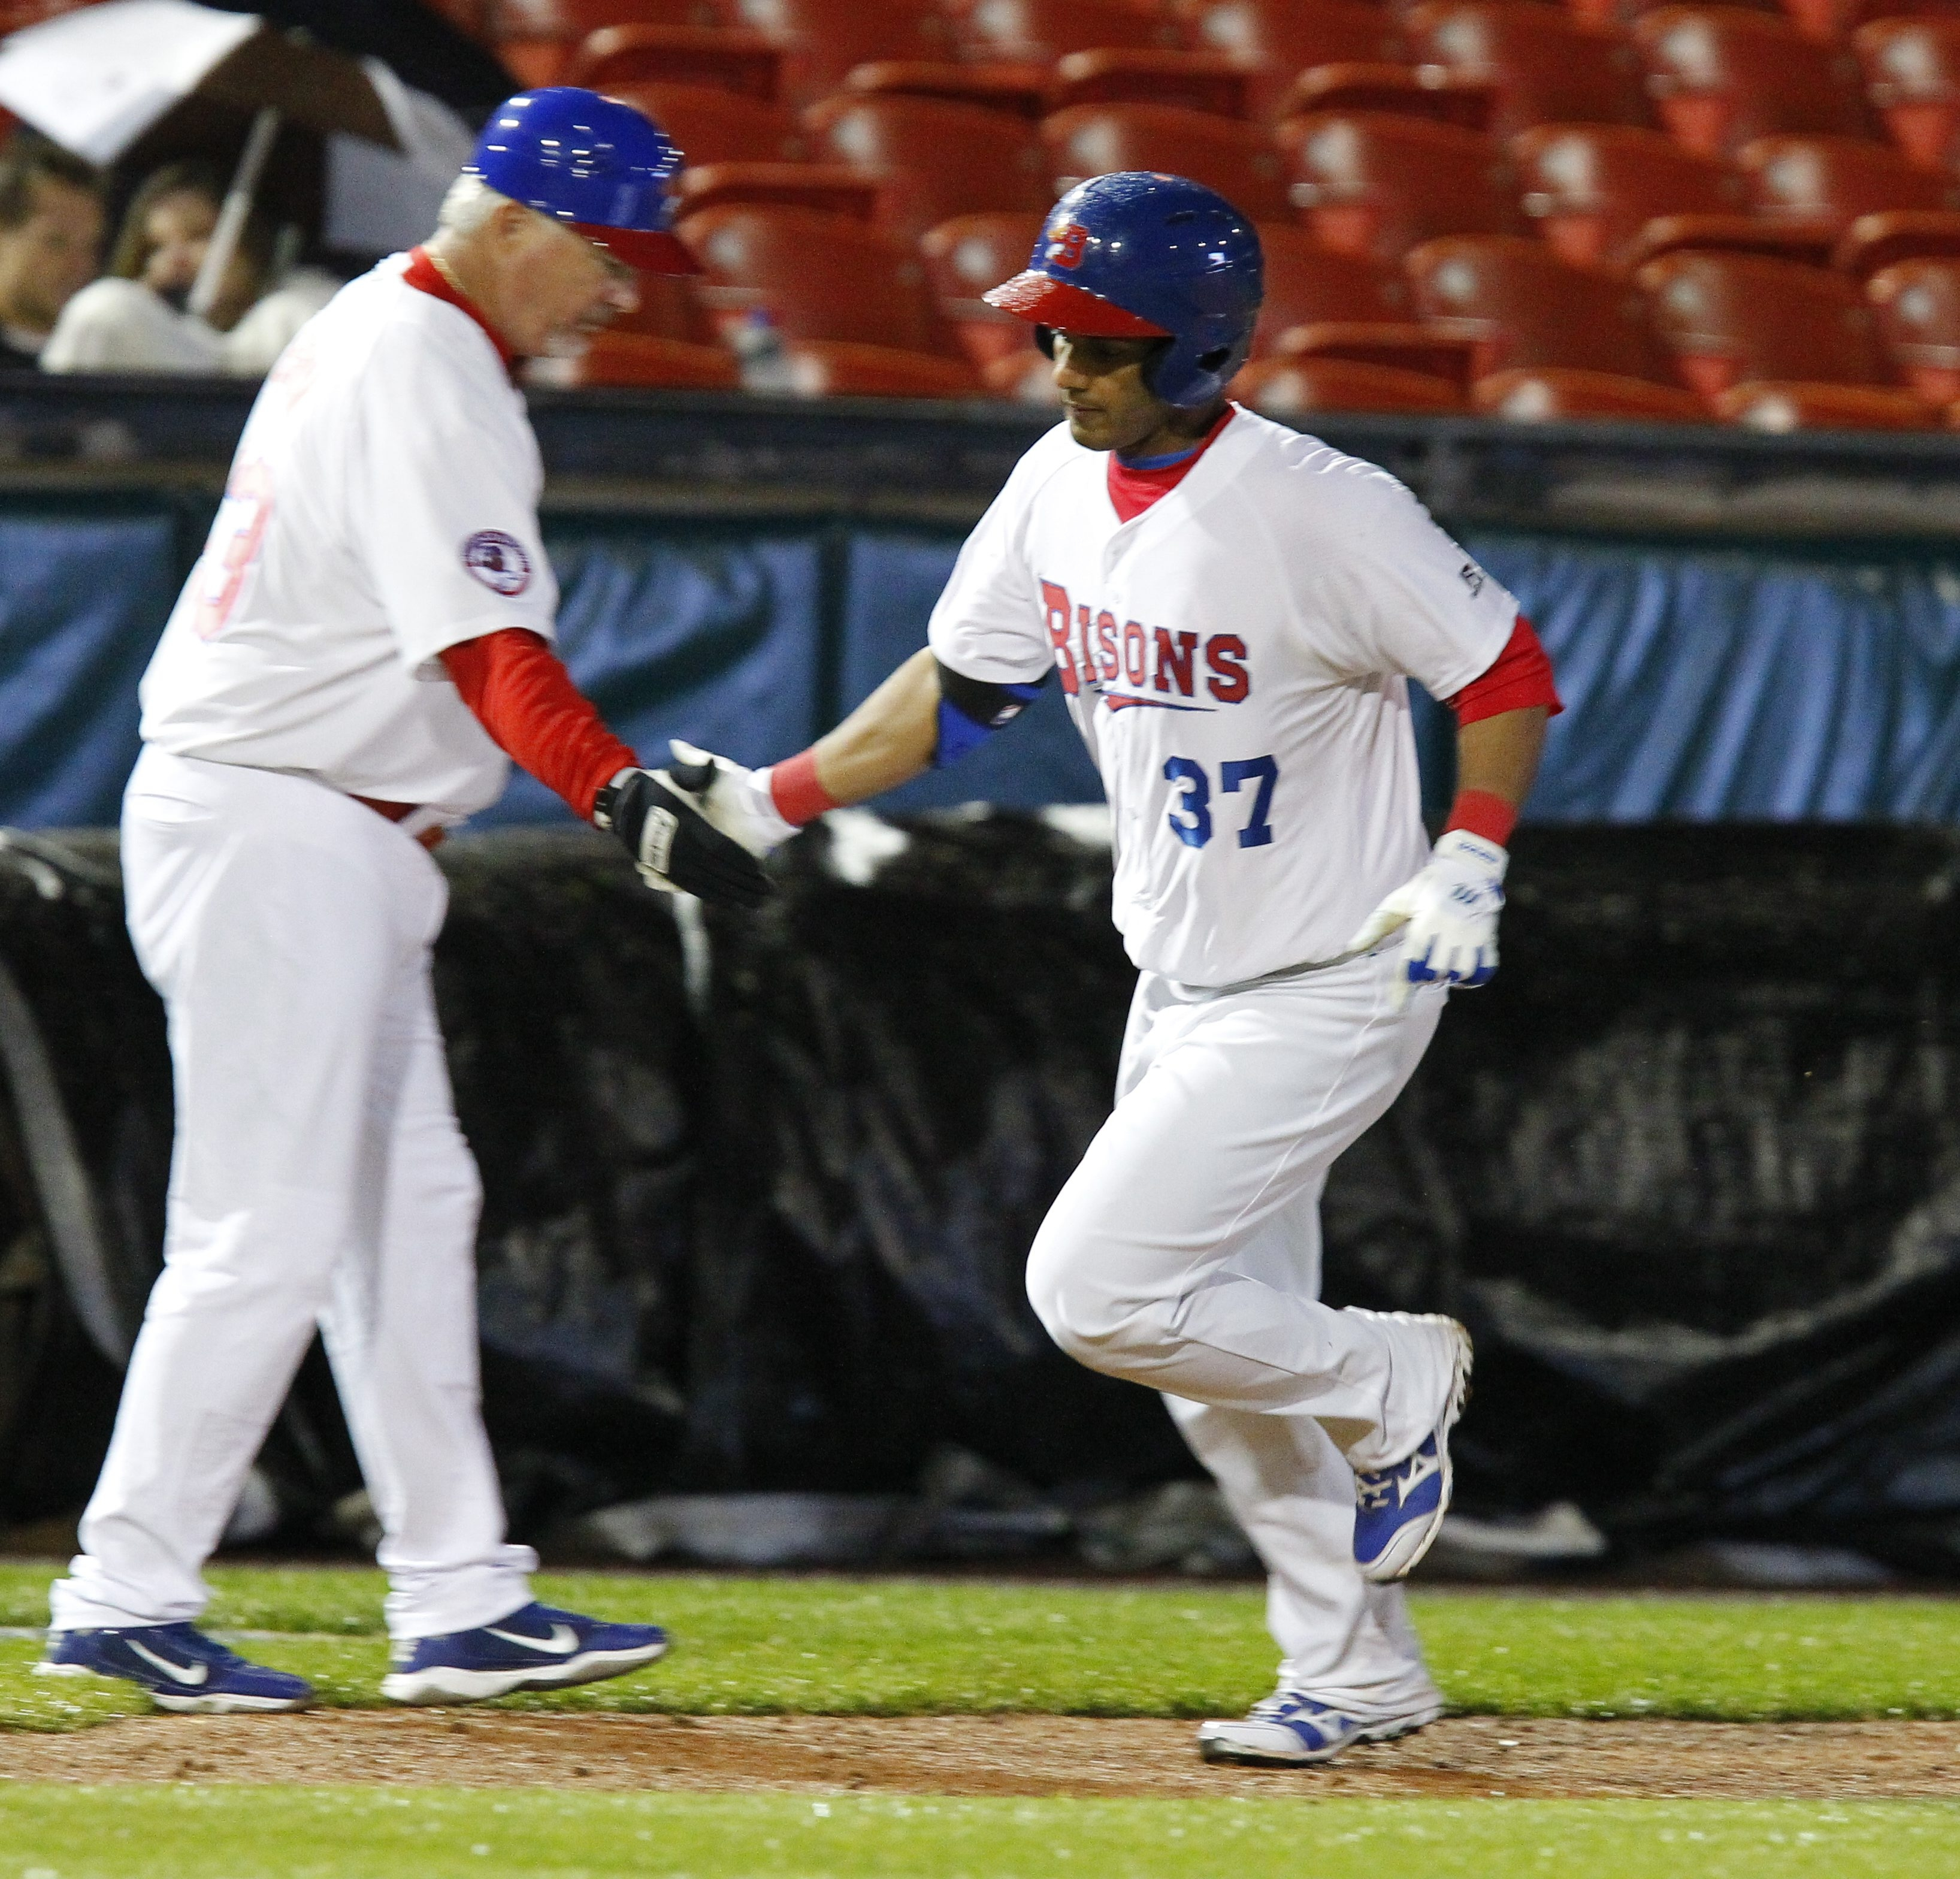 The Bisons' Ricardo Nanita (37) rounds third base and receives congratulations from manager Marty Brown after his solo home run in the fifth inning against Indianapolis.